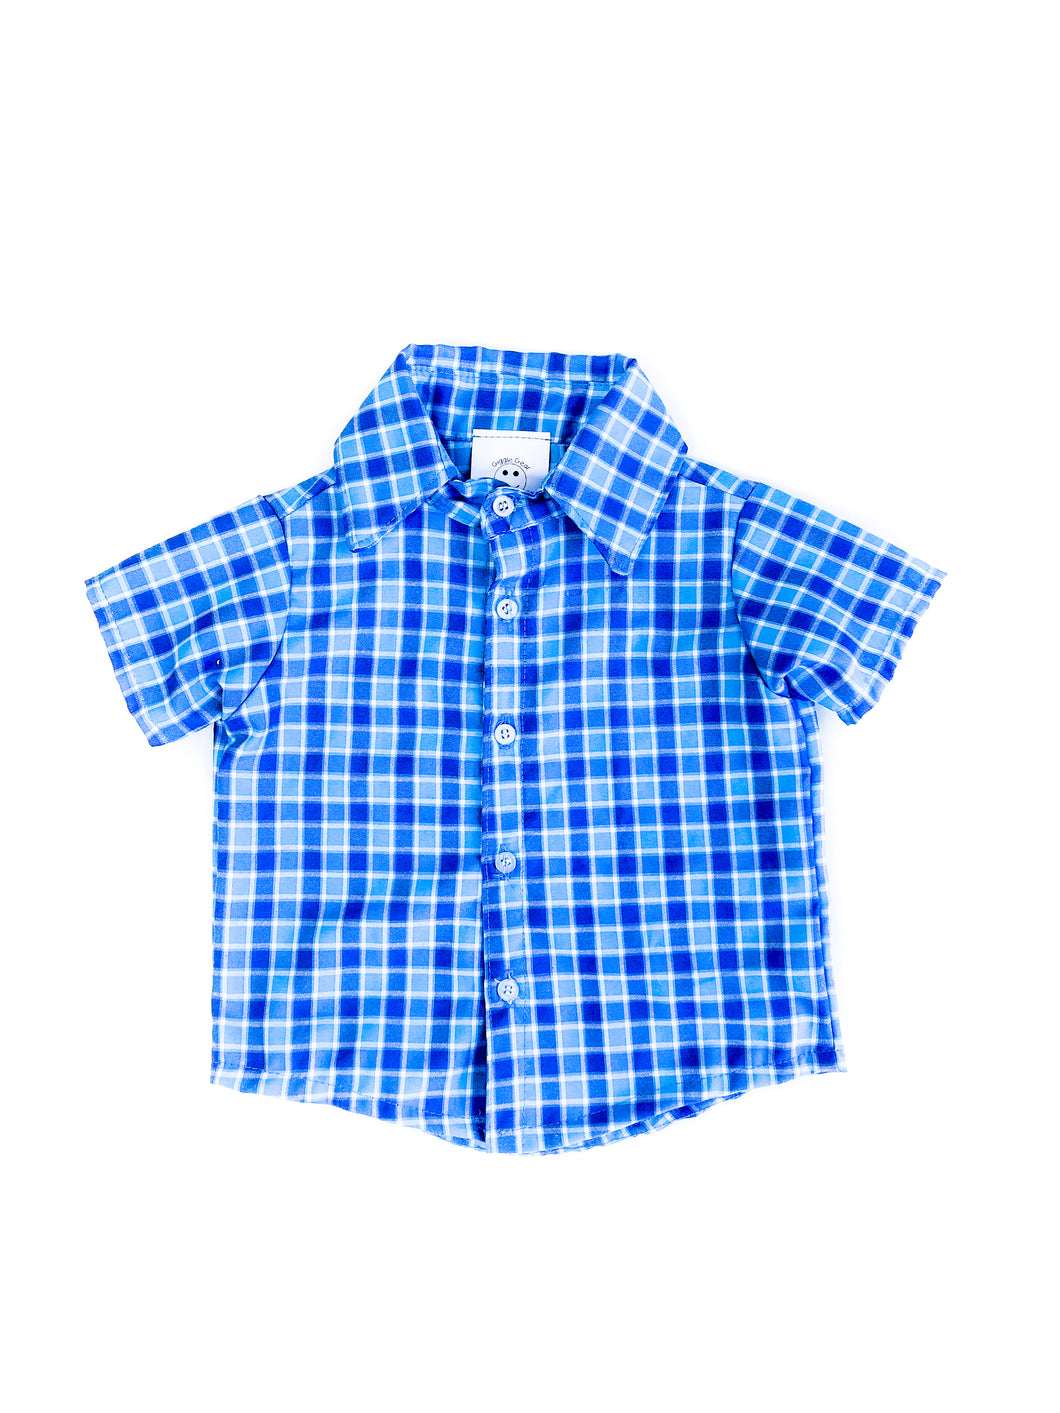 Short Sleeve Collared Plaid Shirt